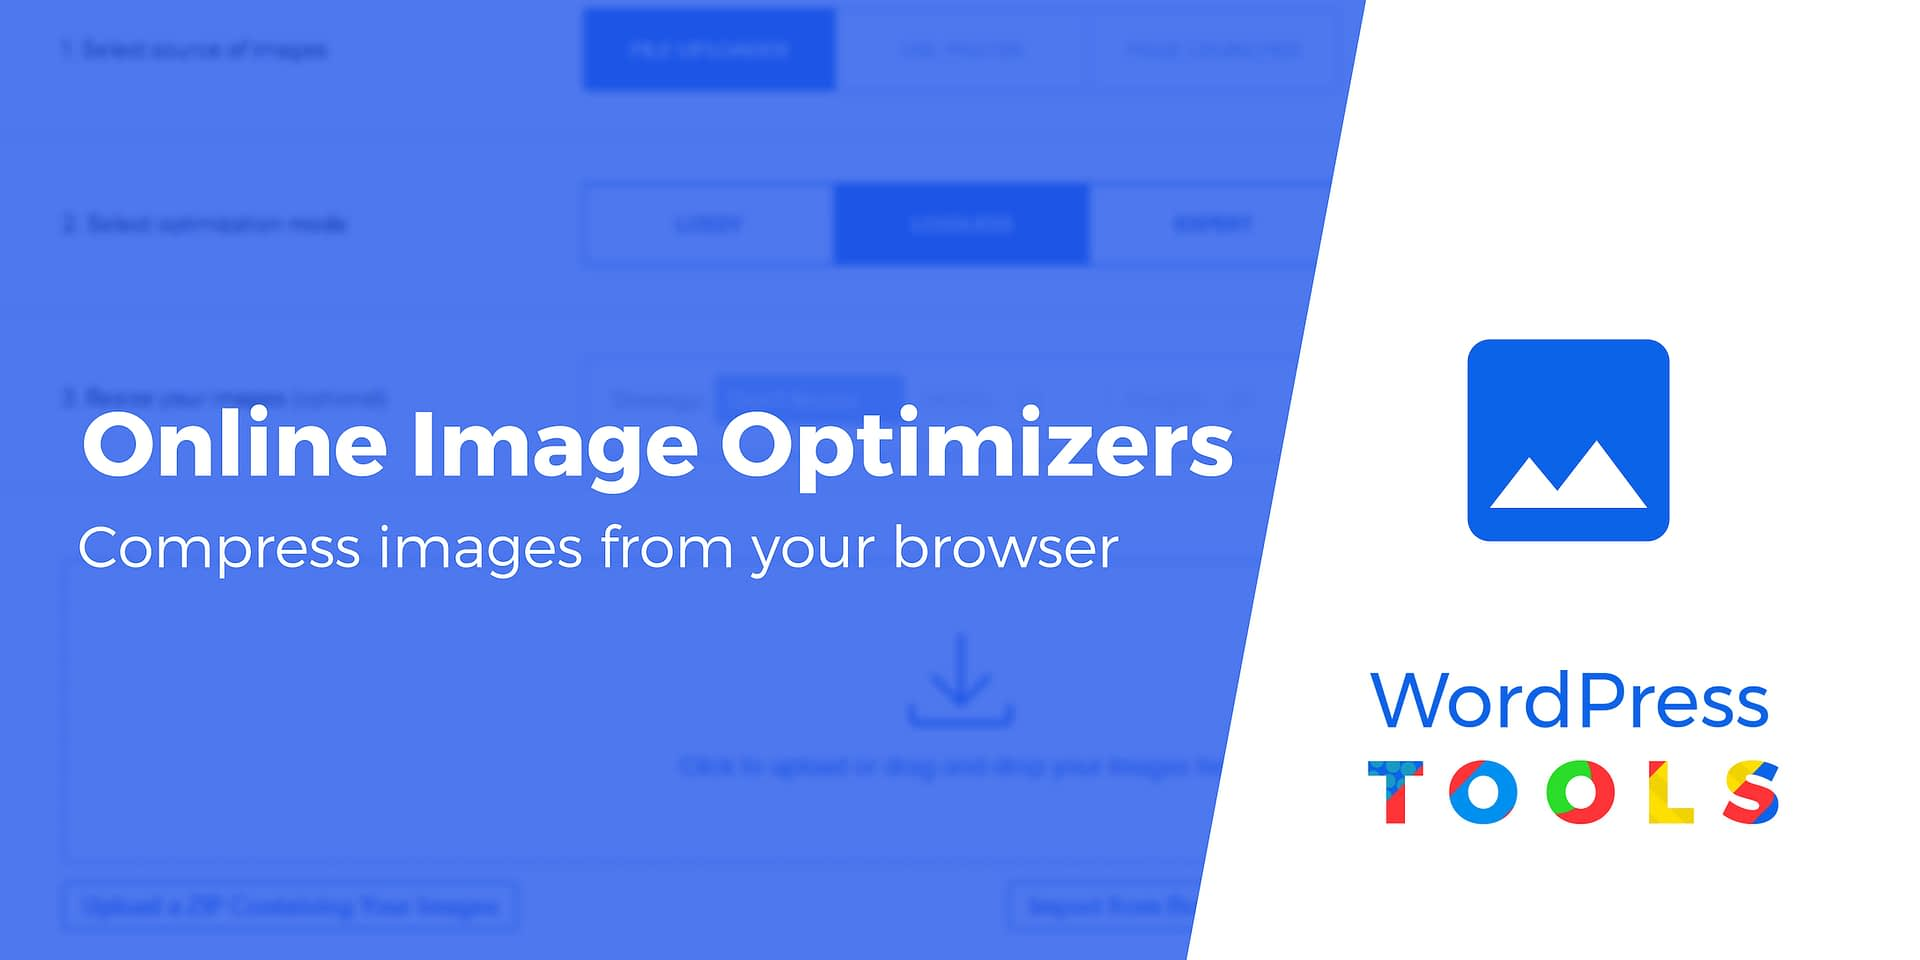 7 Best Online Image Optimizer Tools Compared (Real Test Data)